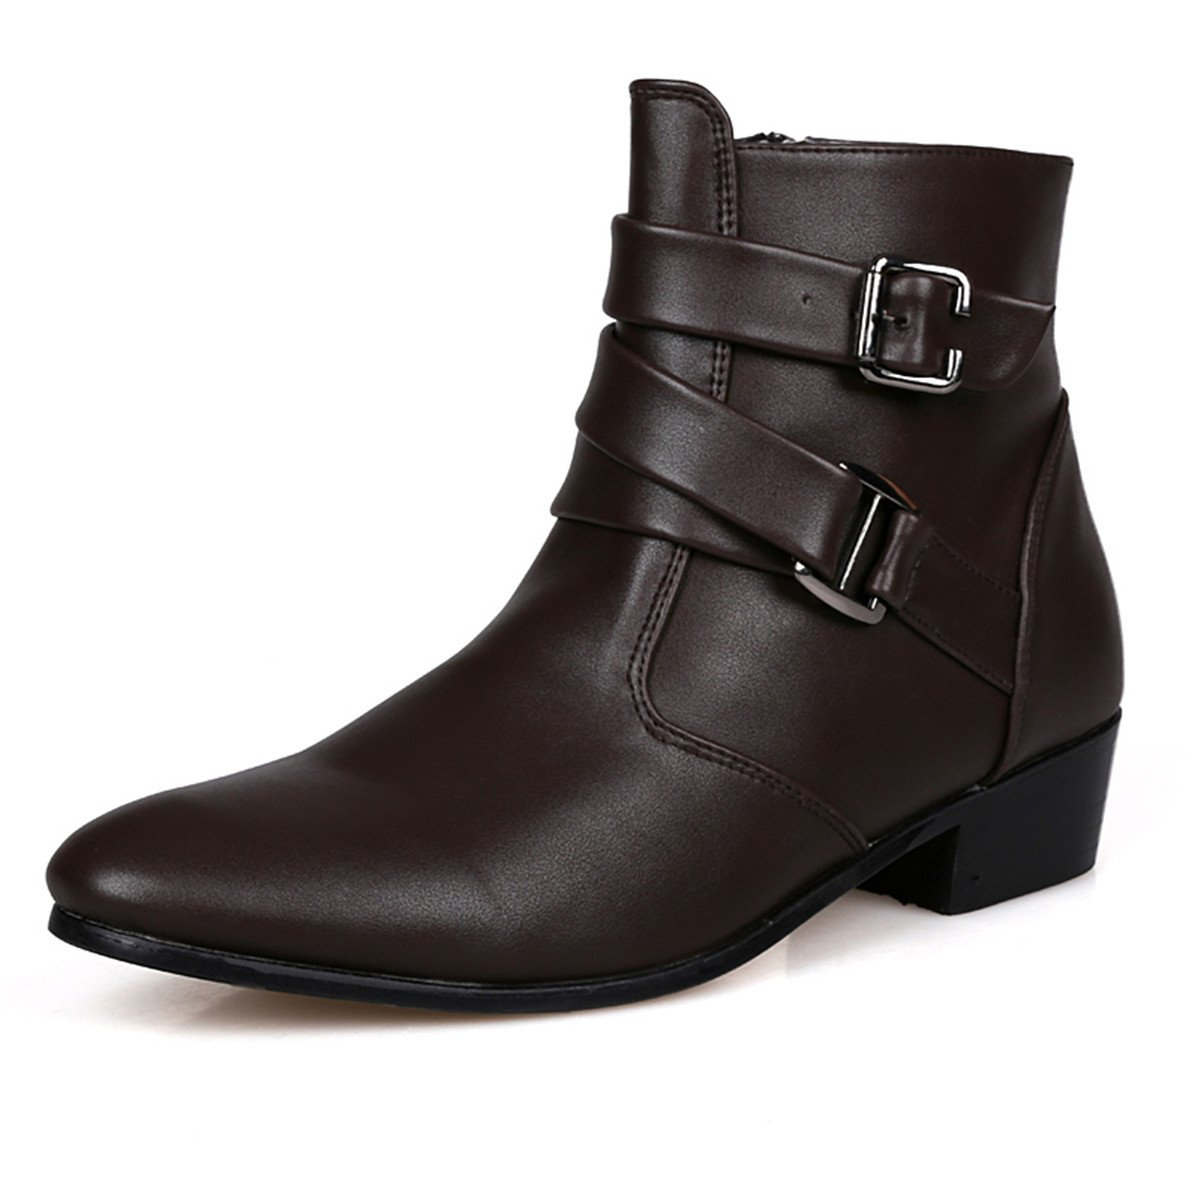 A-cool Men's Narrate Plain Toe Martin Boot Ankle Boots